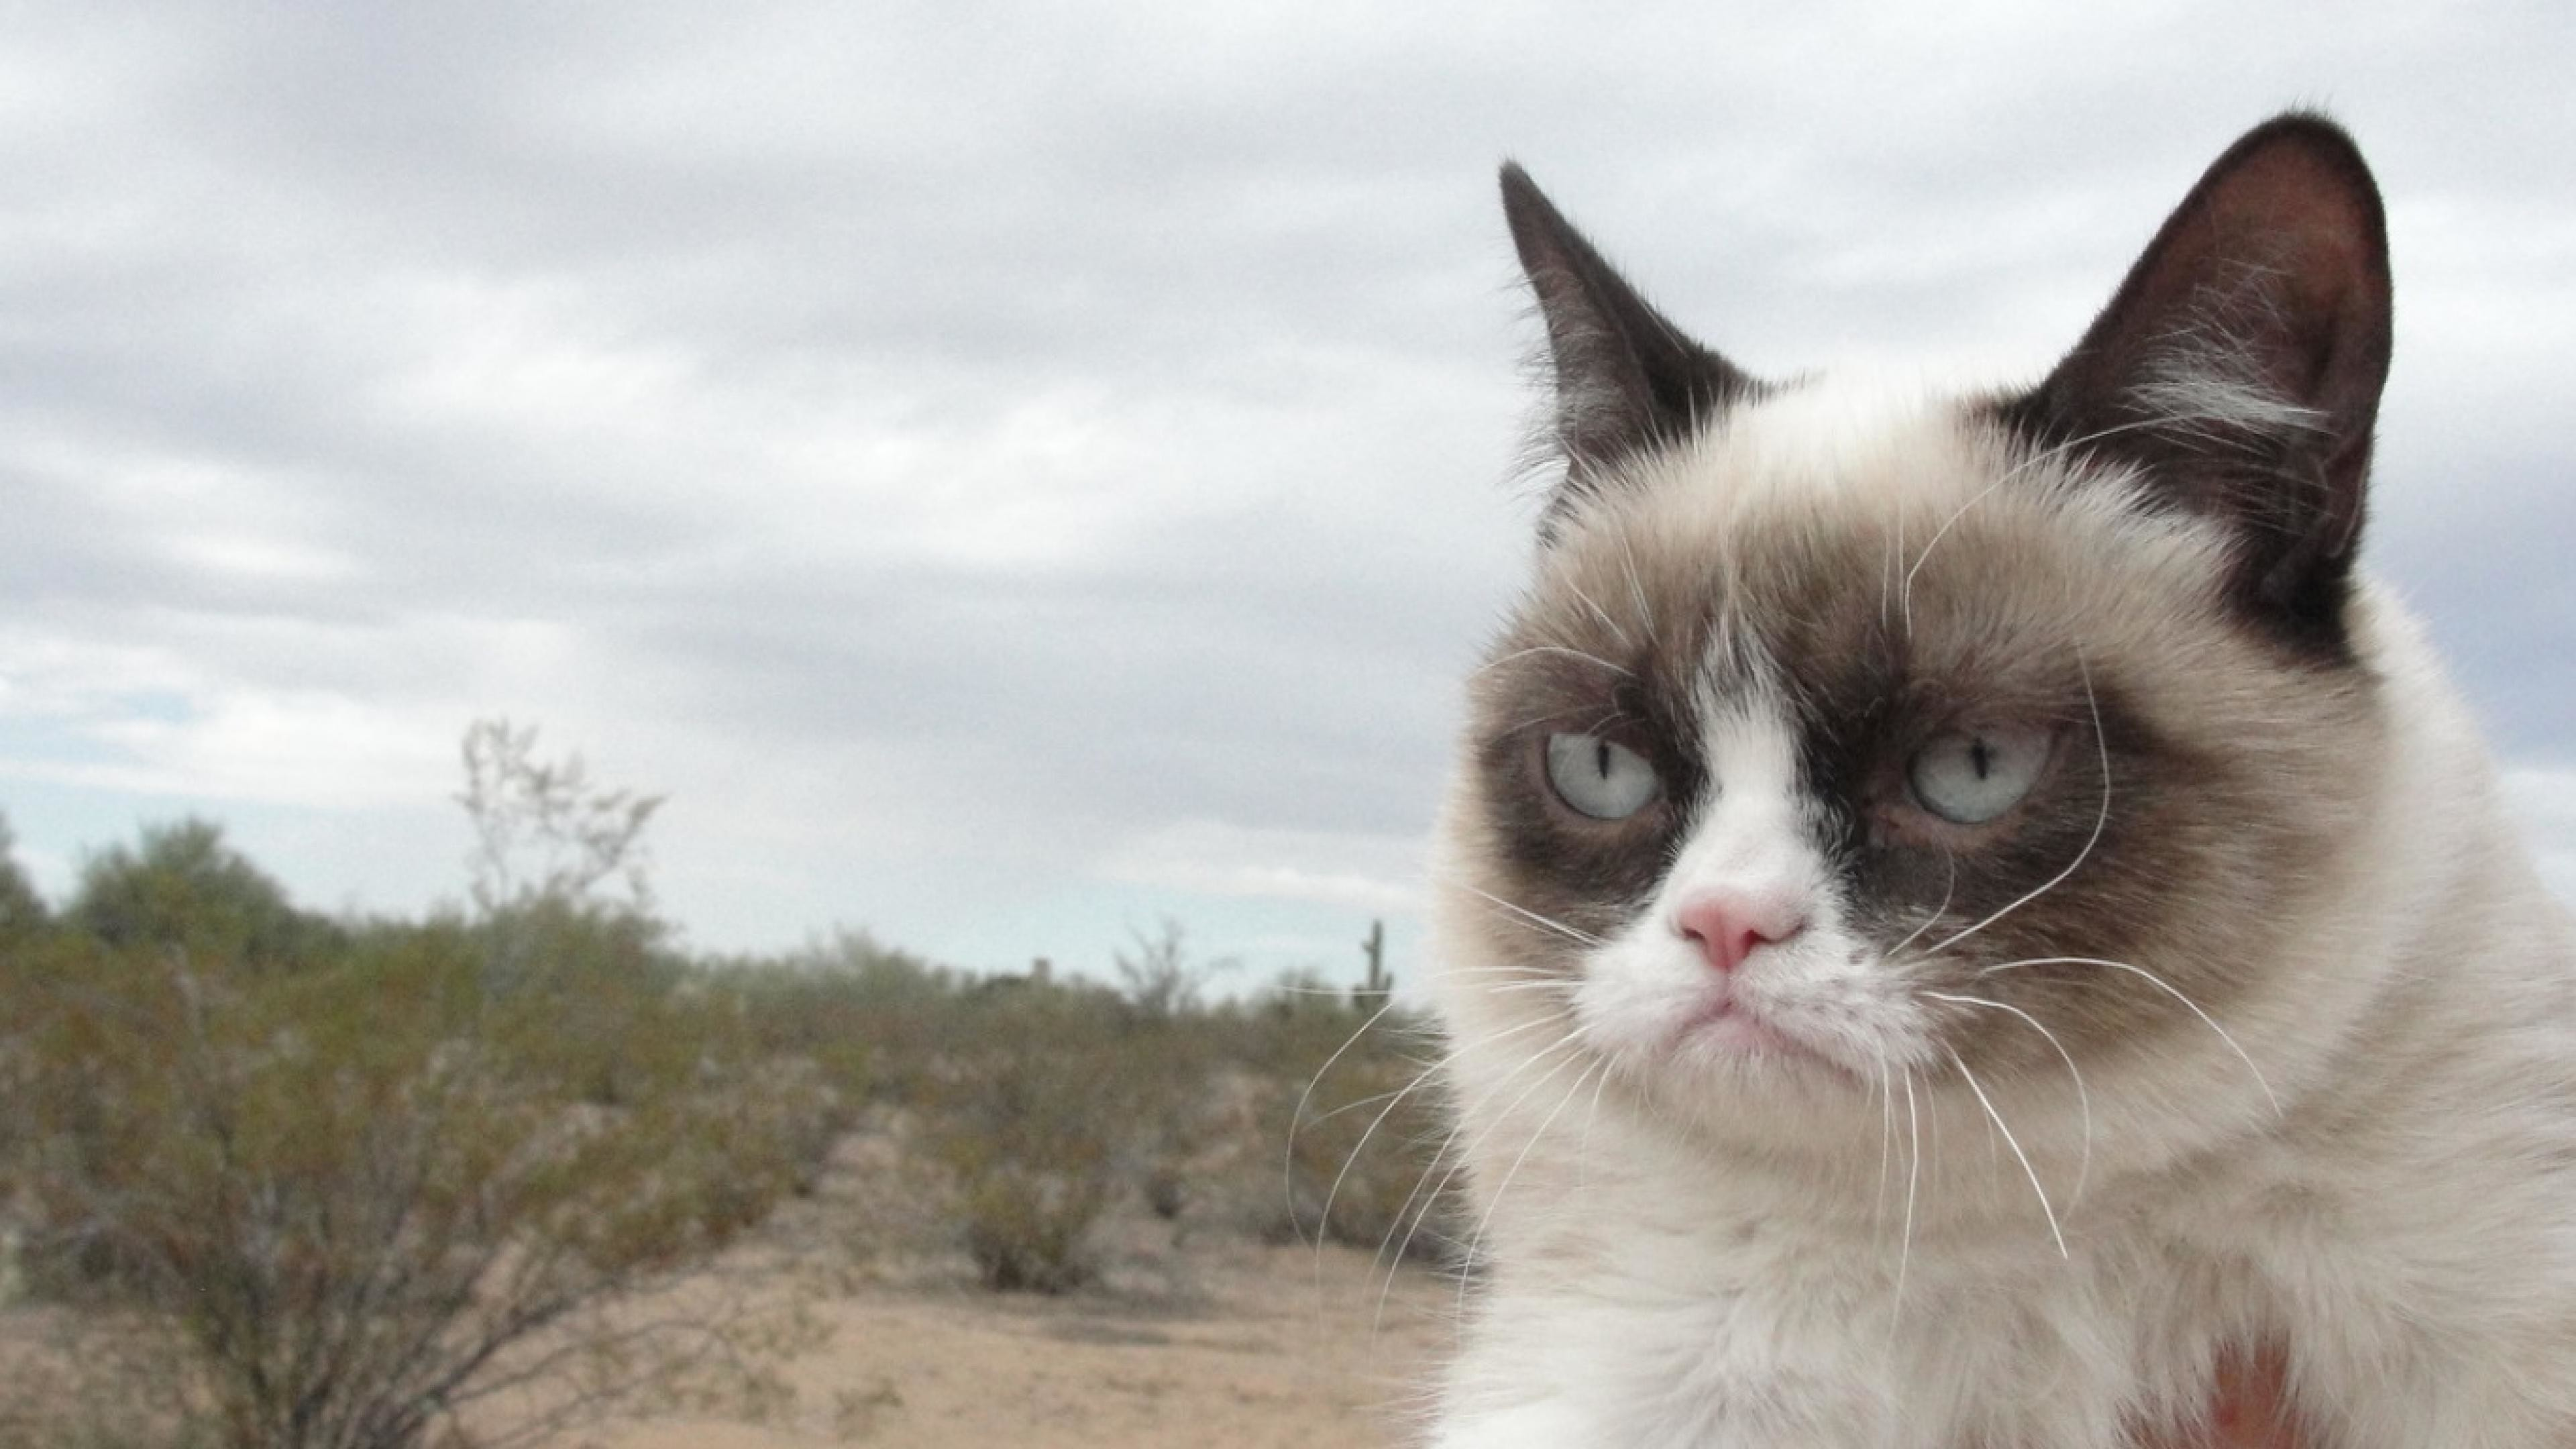 Filename: wp1838209.jpg · view image. Found on: grumpy-cat-wallpapers